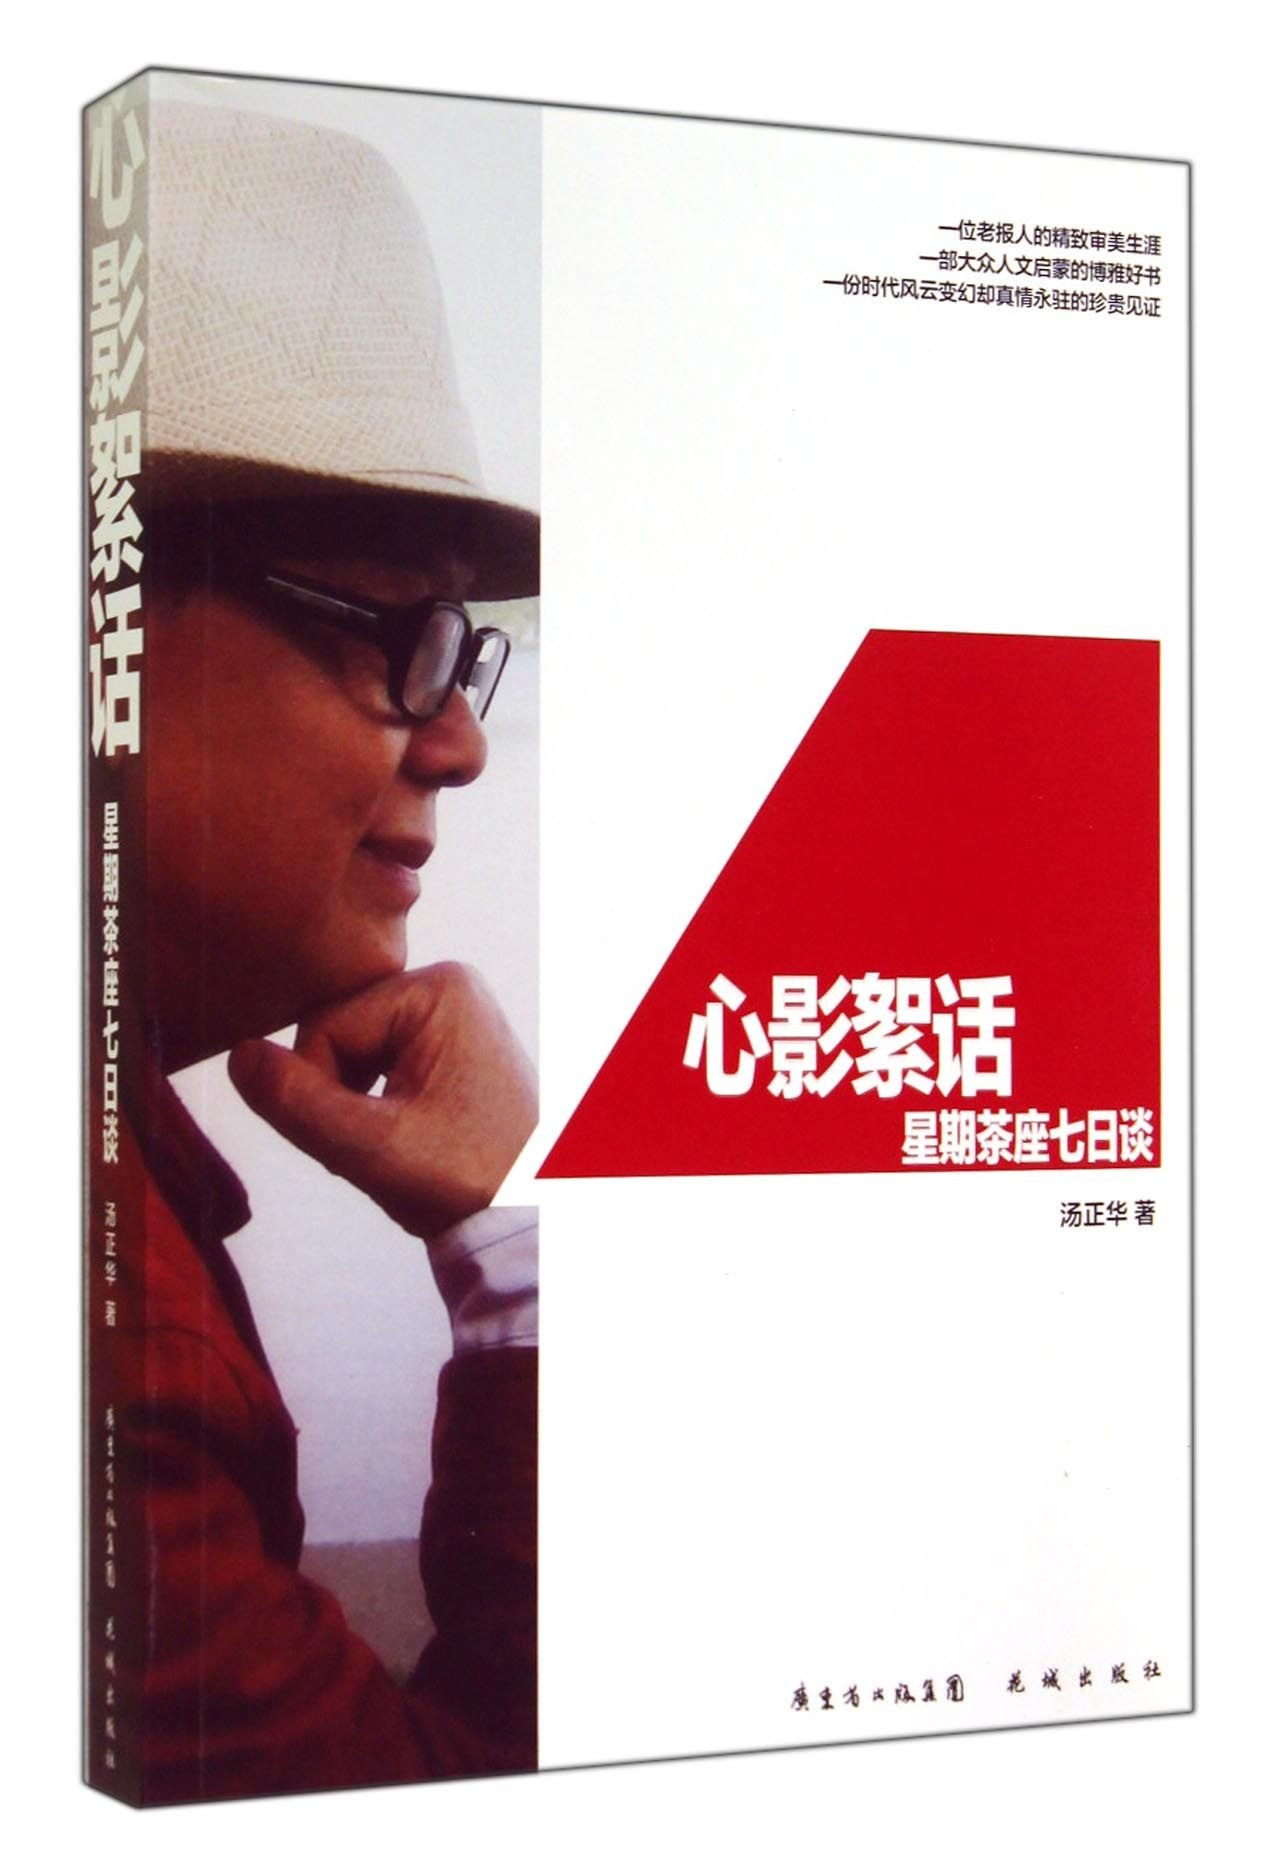 Xu heart shadow. then (this is an old newspaper man of exquisite aesthetic career; This is a public liberal arts humanities enlightenment books; This is a precious witness of the times changing. but the truth forever!)(Chinese Edition) pdf